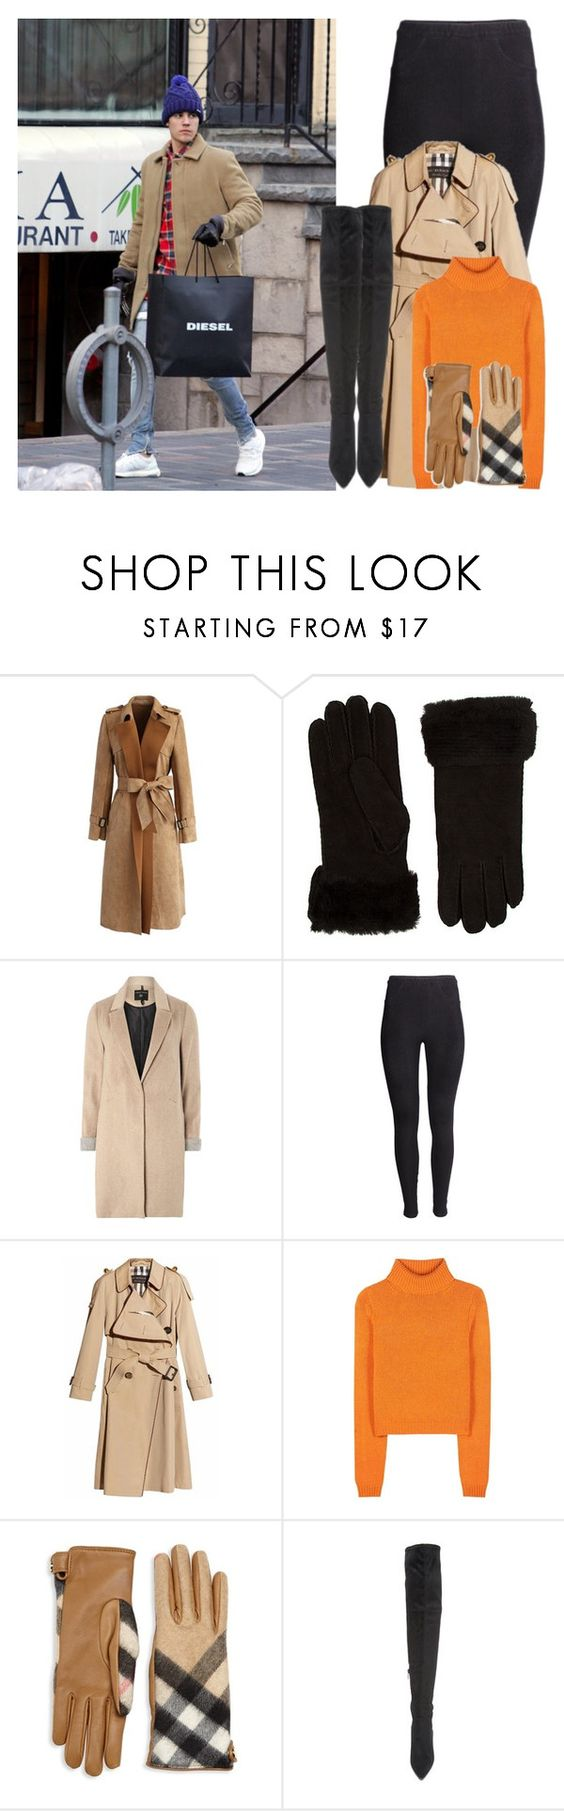 """""""With Justin"""" by angelbrubisc ❤ liked on Polyvore featuring Chicwish, Emu, mel, Justin Bieber, H&M, Burberry, Acne Studios and Kendall + Kylie"""